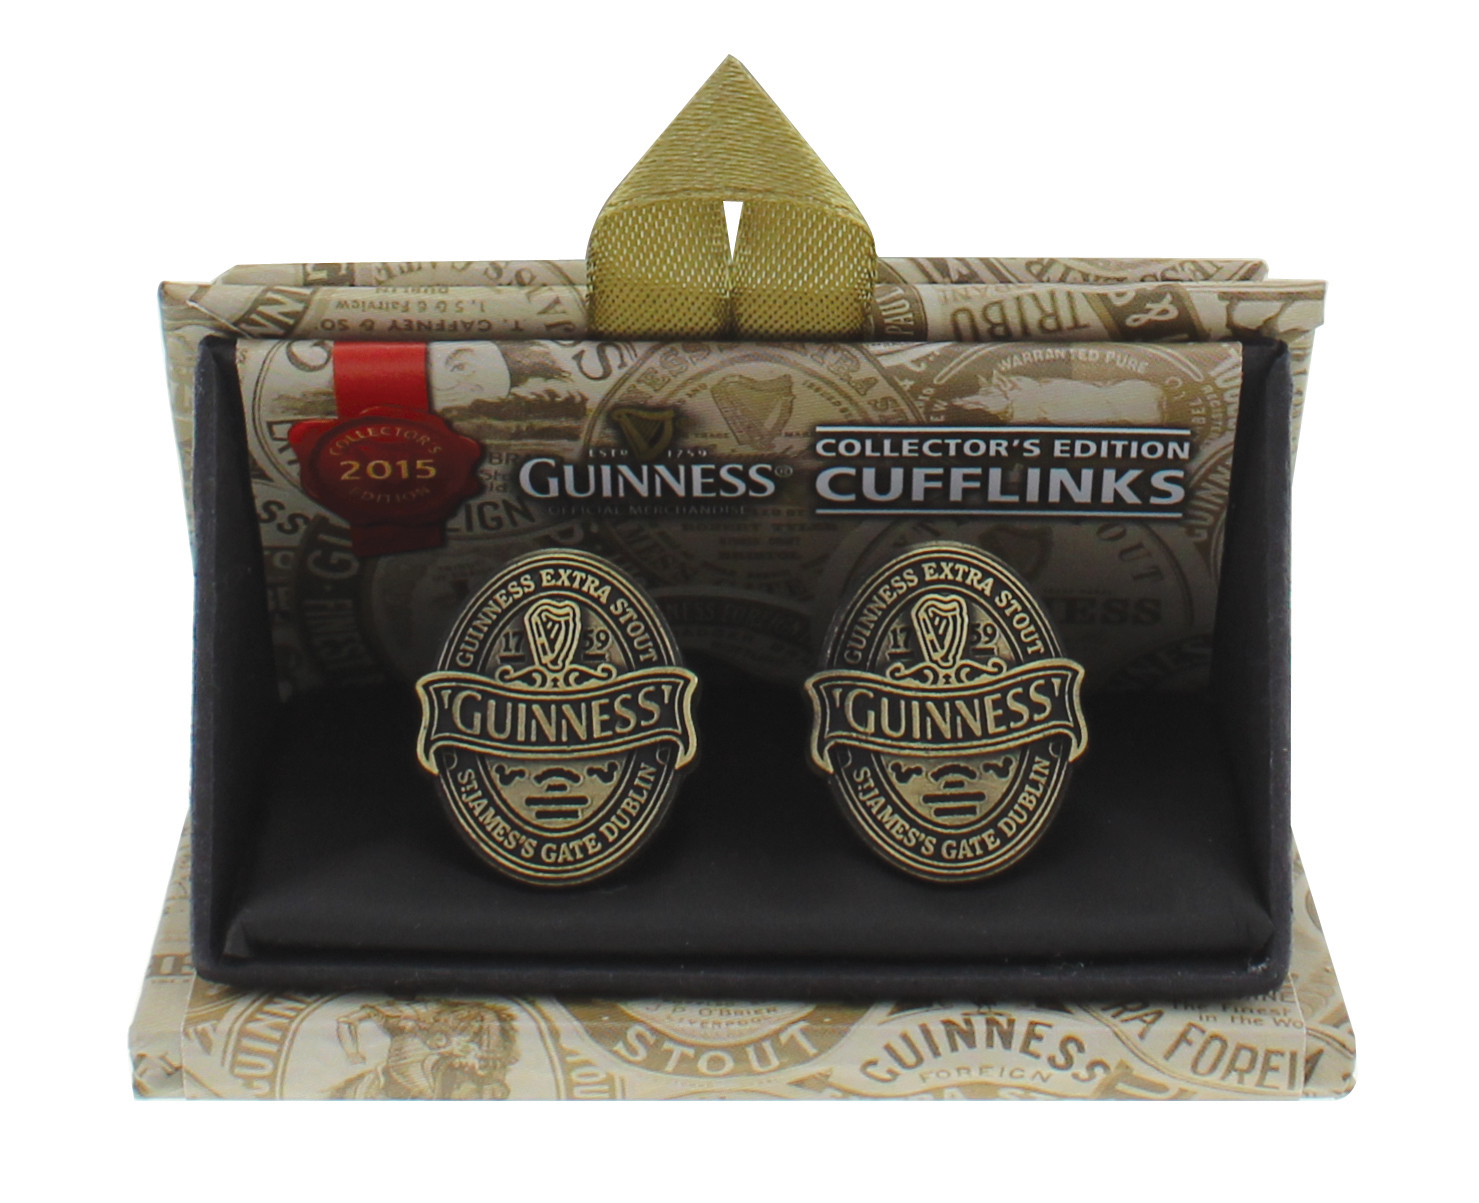 Guinness 2015 Collectors Cuff Links - Click Image to Close